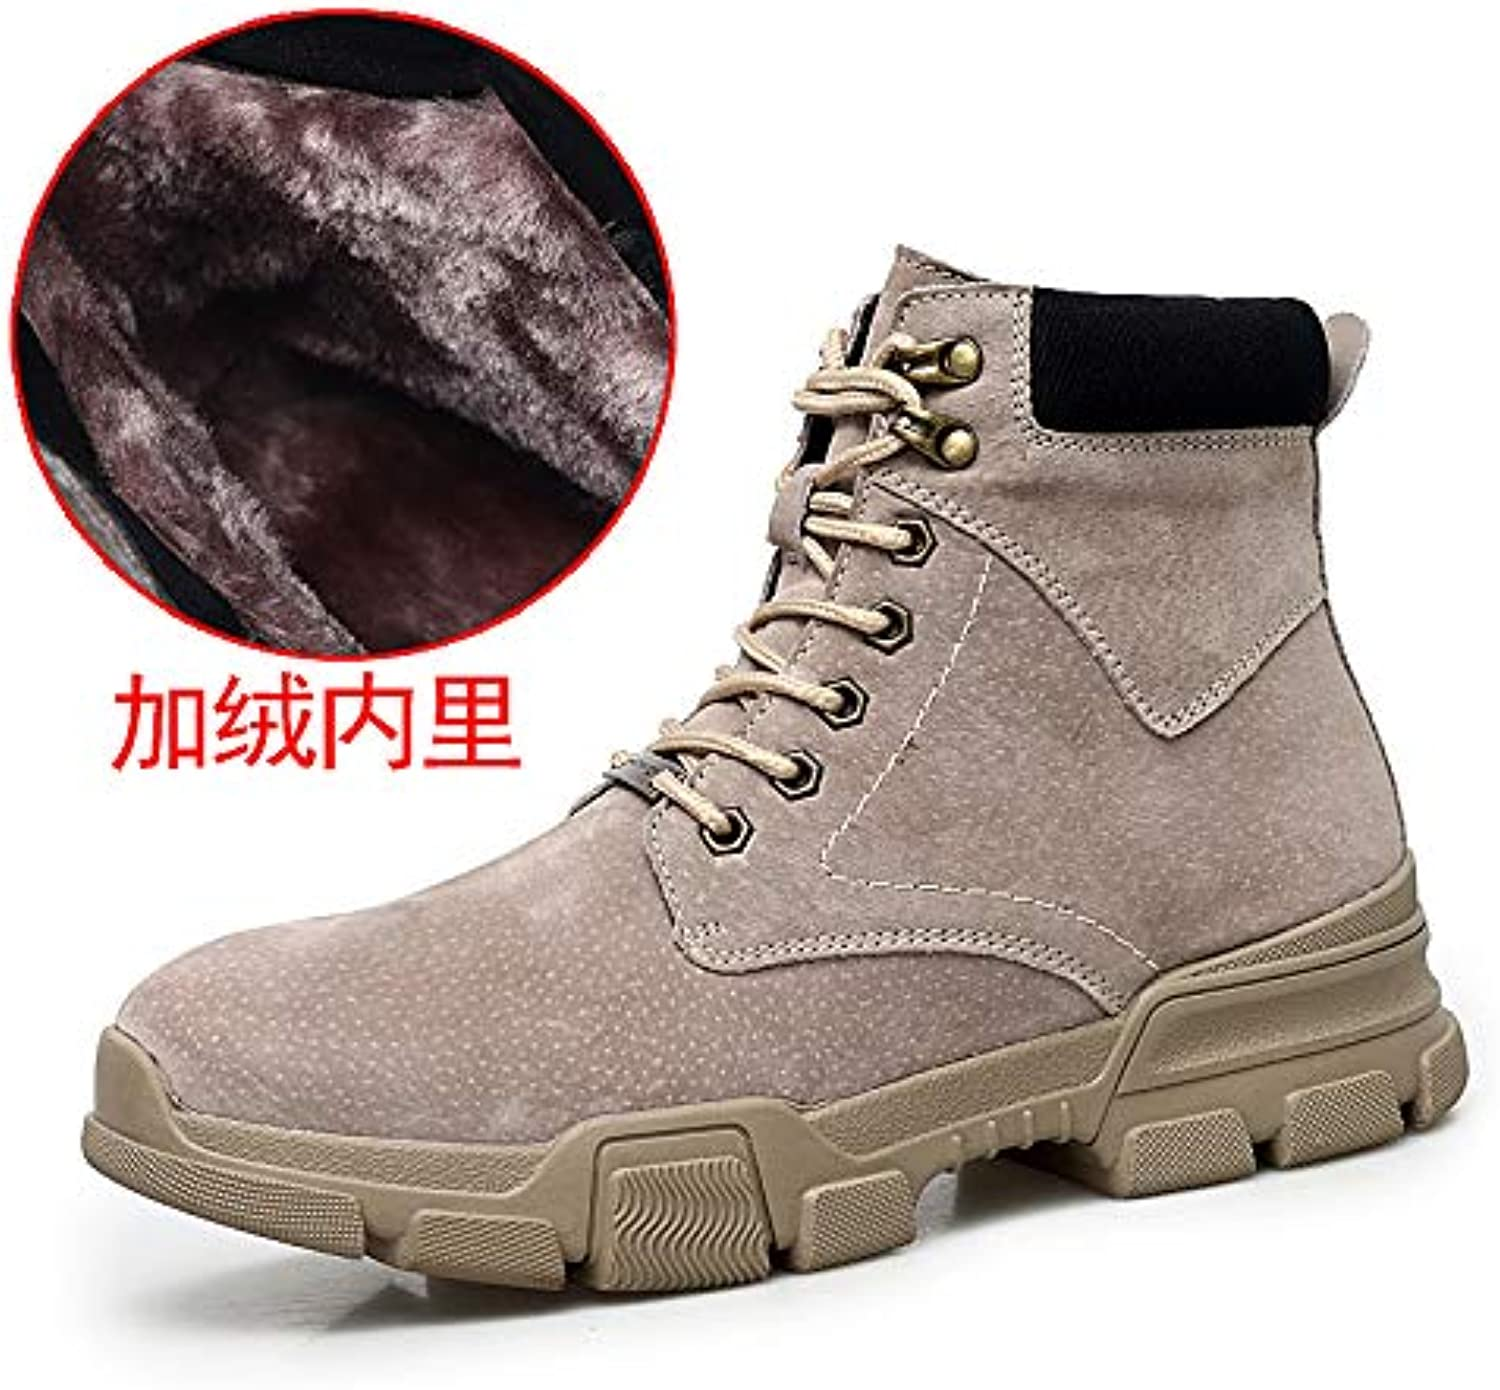 ZyuQ Ankle boots Martin Boots Men'S shoes Winter Thick Warm And Cotton Pu High Help Tooling Snow Boots